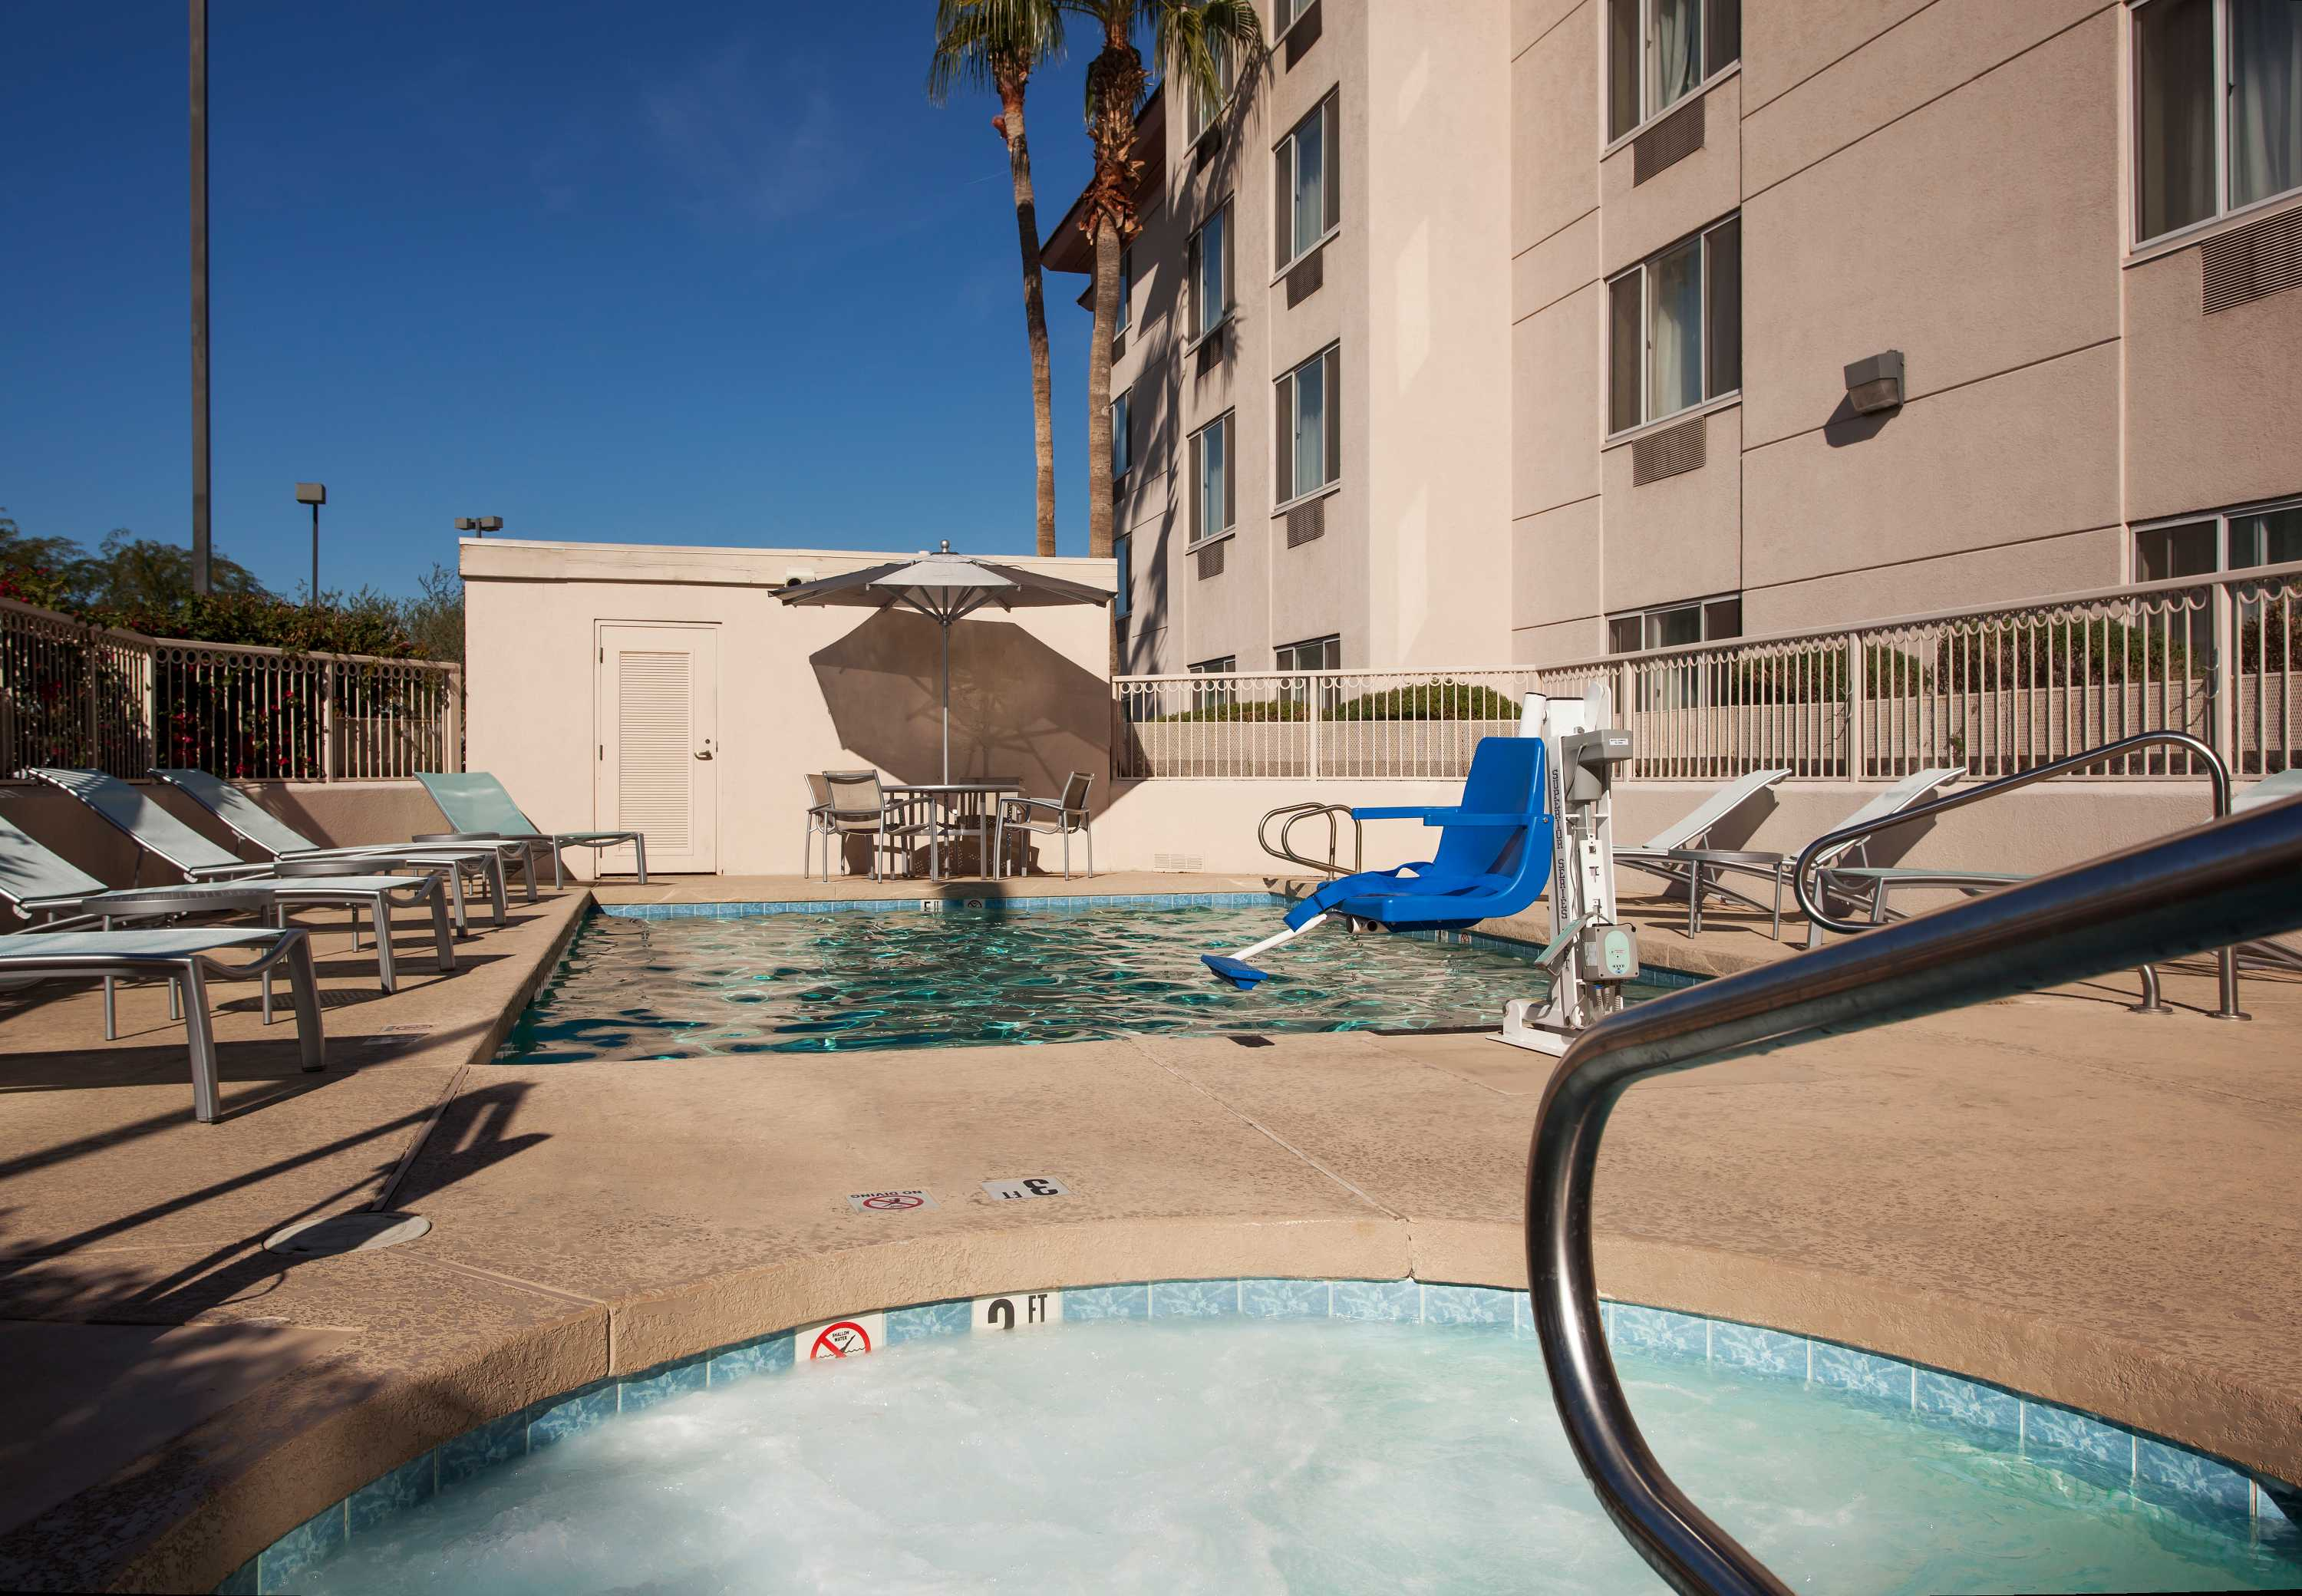 SpringHill Suites by Marriott Phoenix Glendale/Peoria image 12